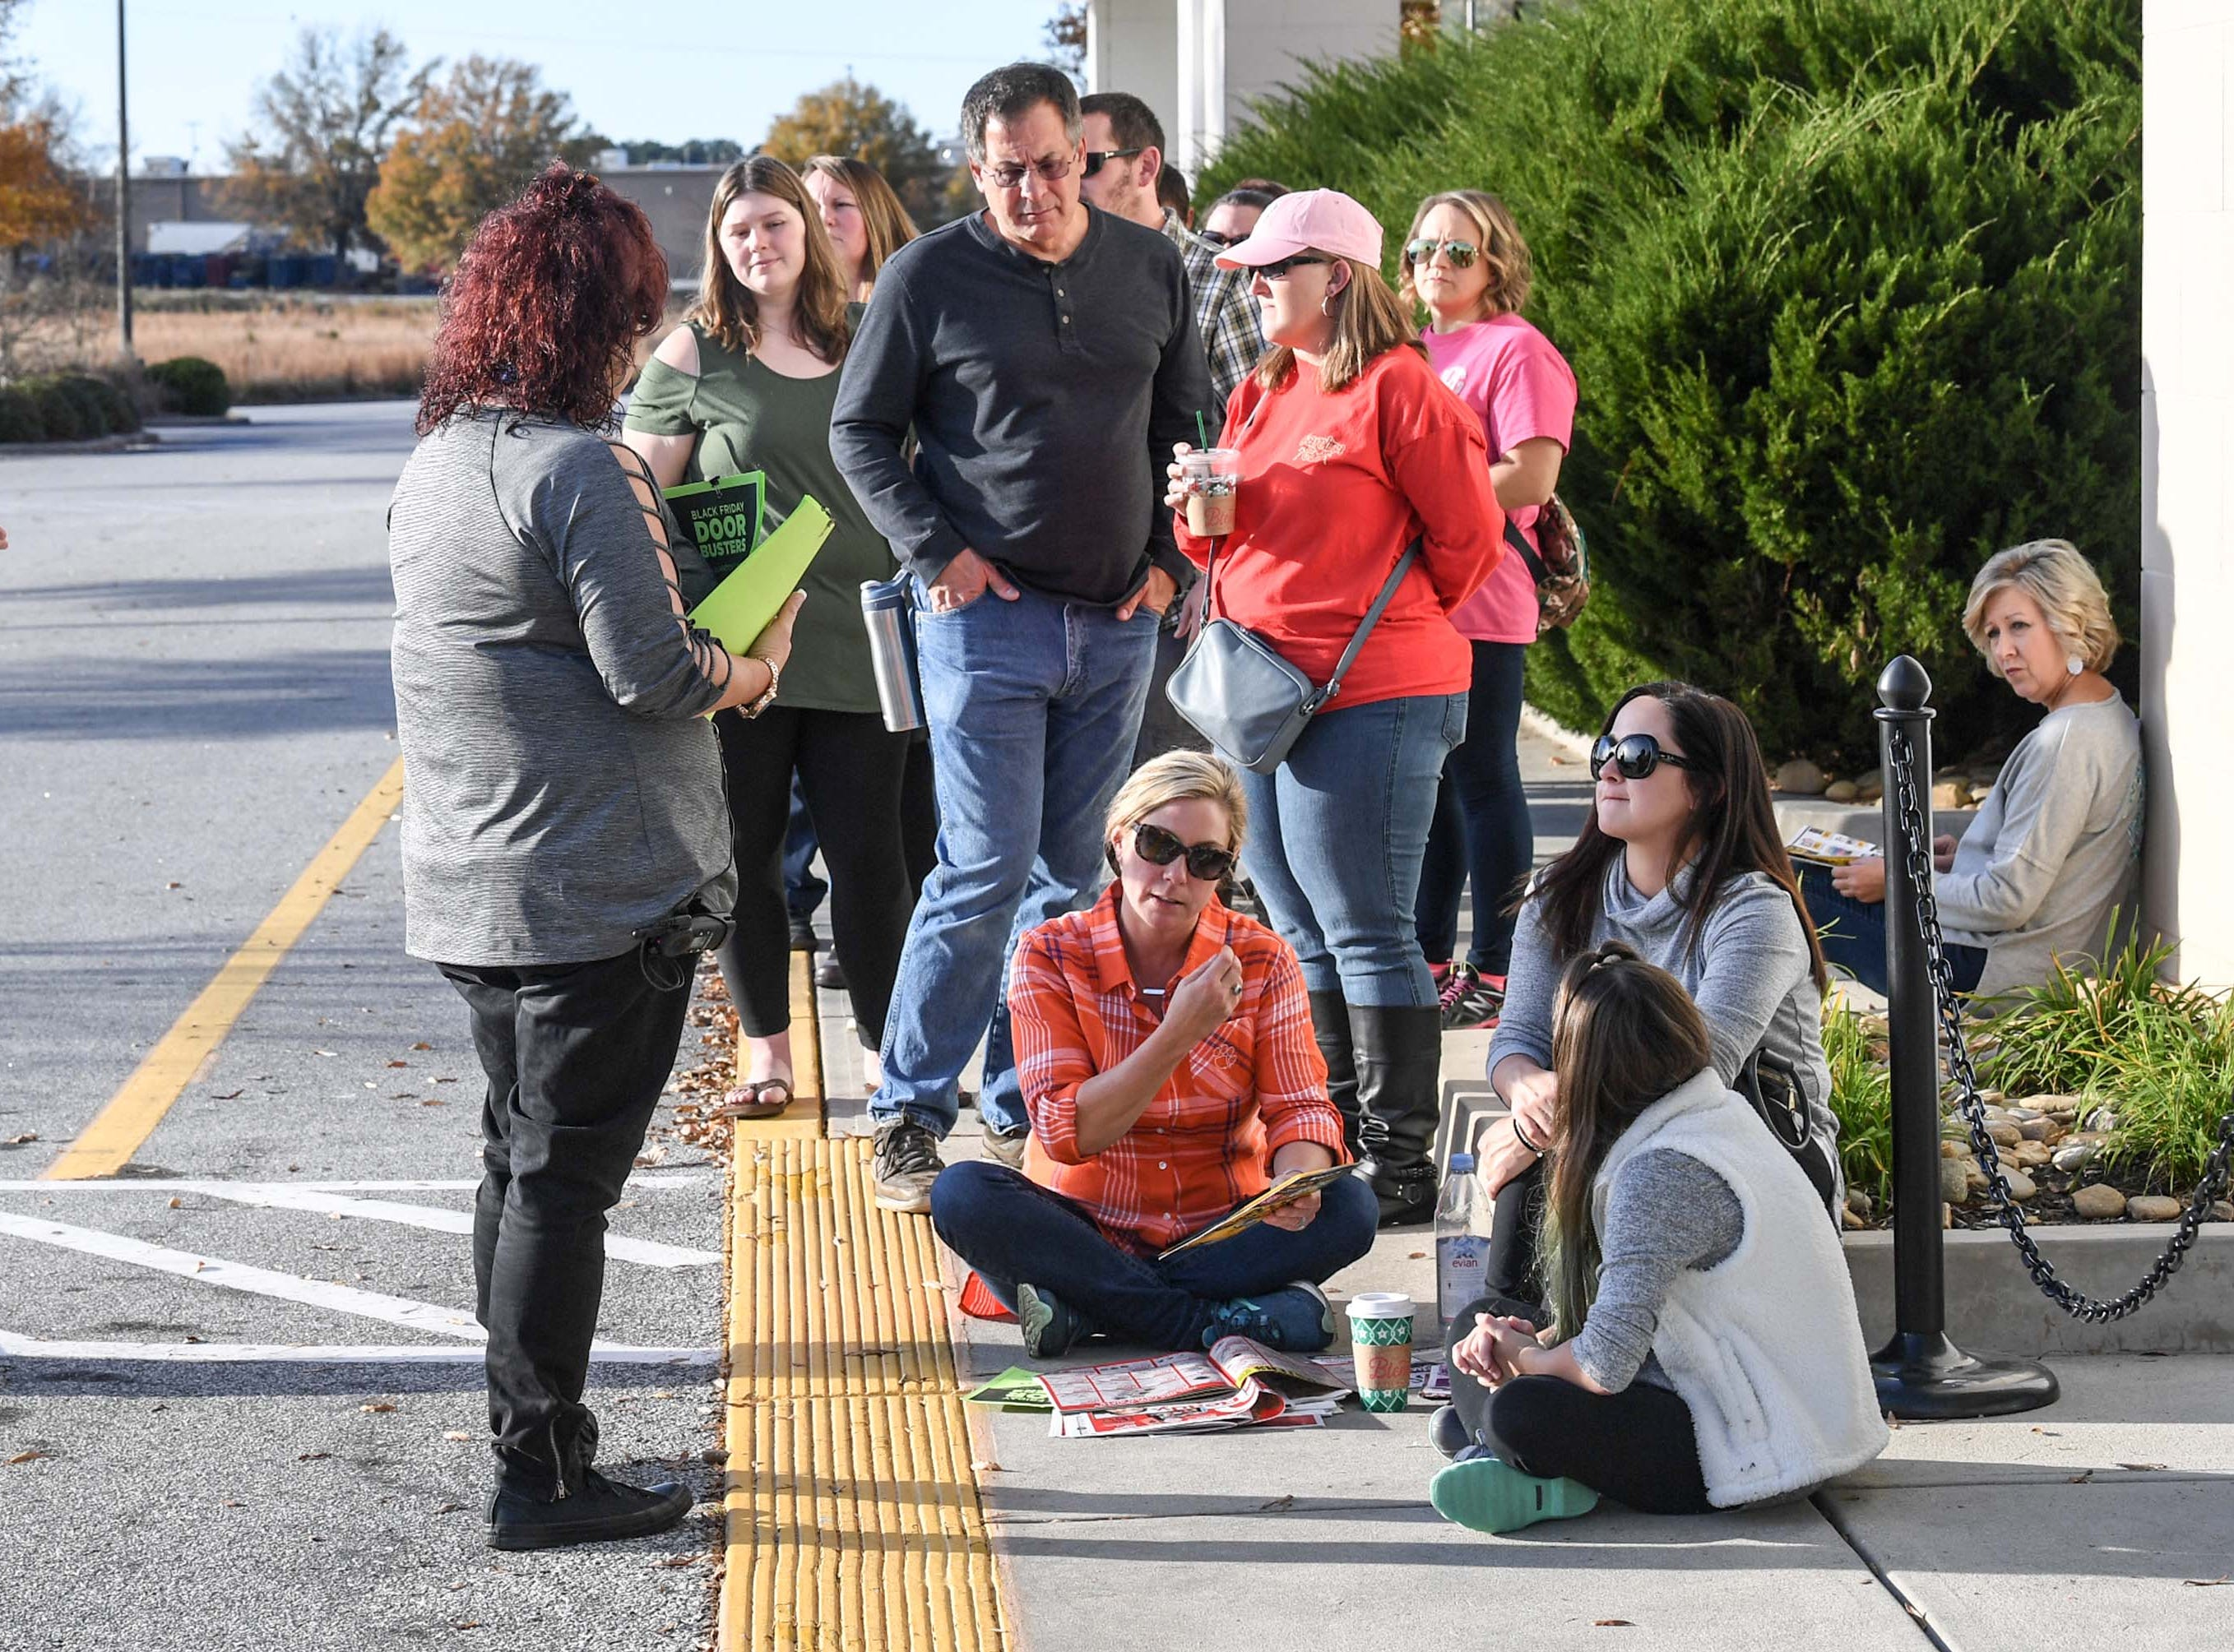 Shannon Roberts, left, a Kohl's area manager, answers a question from first in line customer Sunny Davis, with Victoria Bonnette, and Lilah Bonnette, while waiting in line for doors to open for Black Friday sales at Kohl's in Anderson on Thanksgiving Day, Thursday, November 22, 2018.